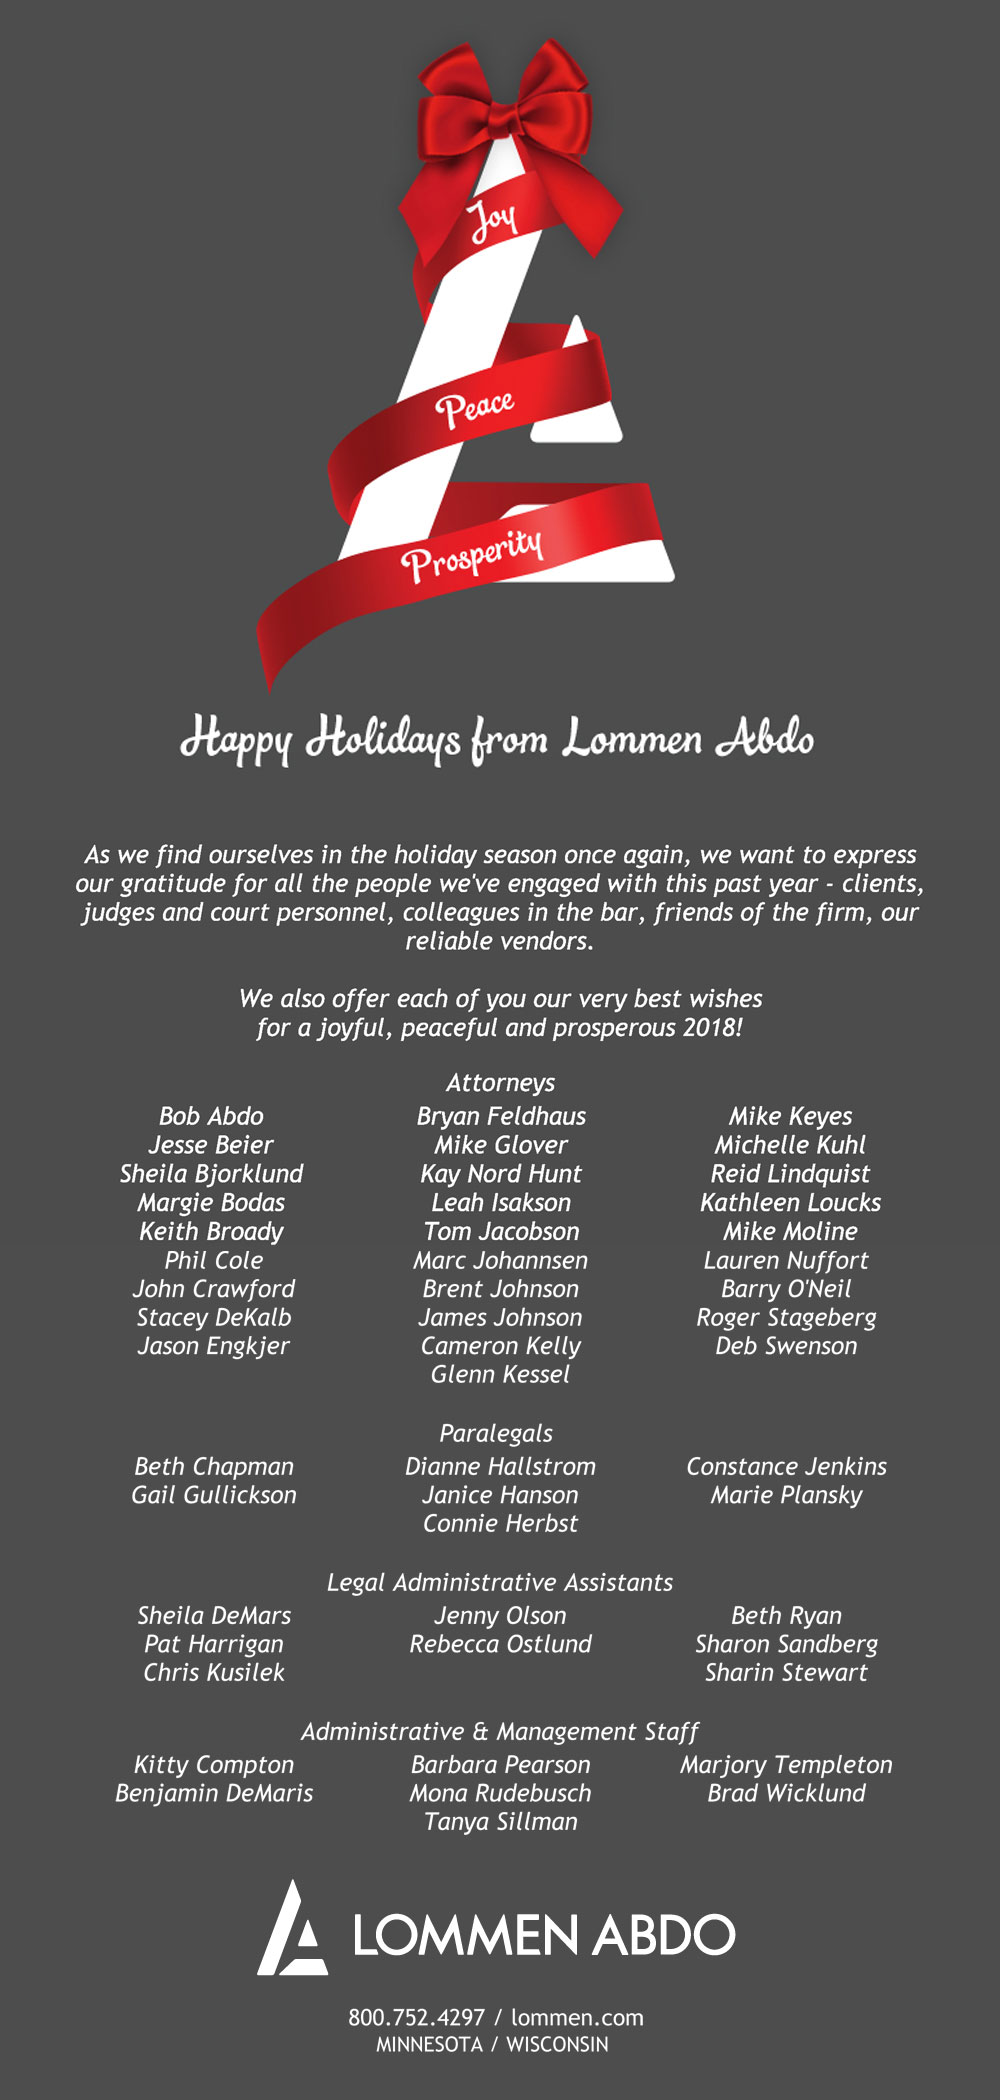 Lommen Abdo's logo tree with ribbon garland and full text greeting